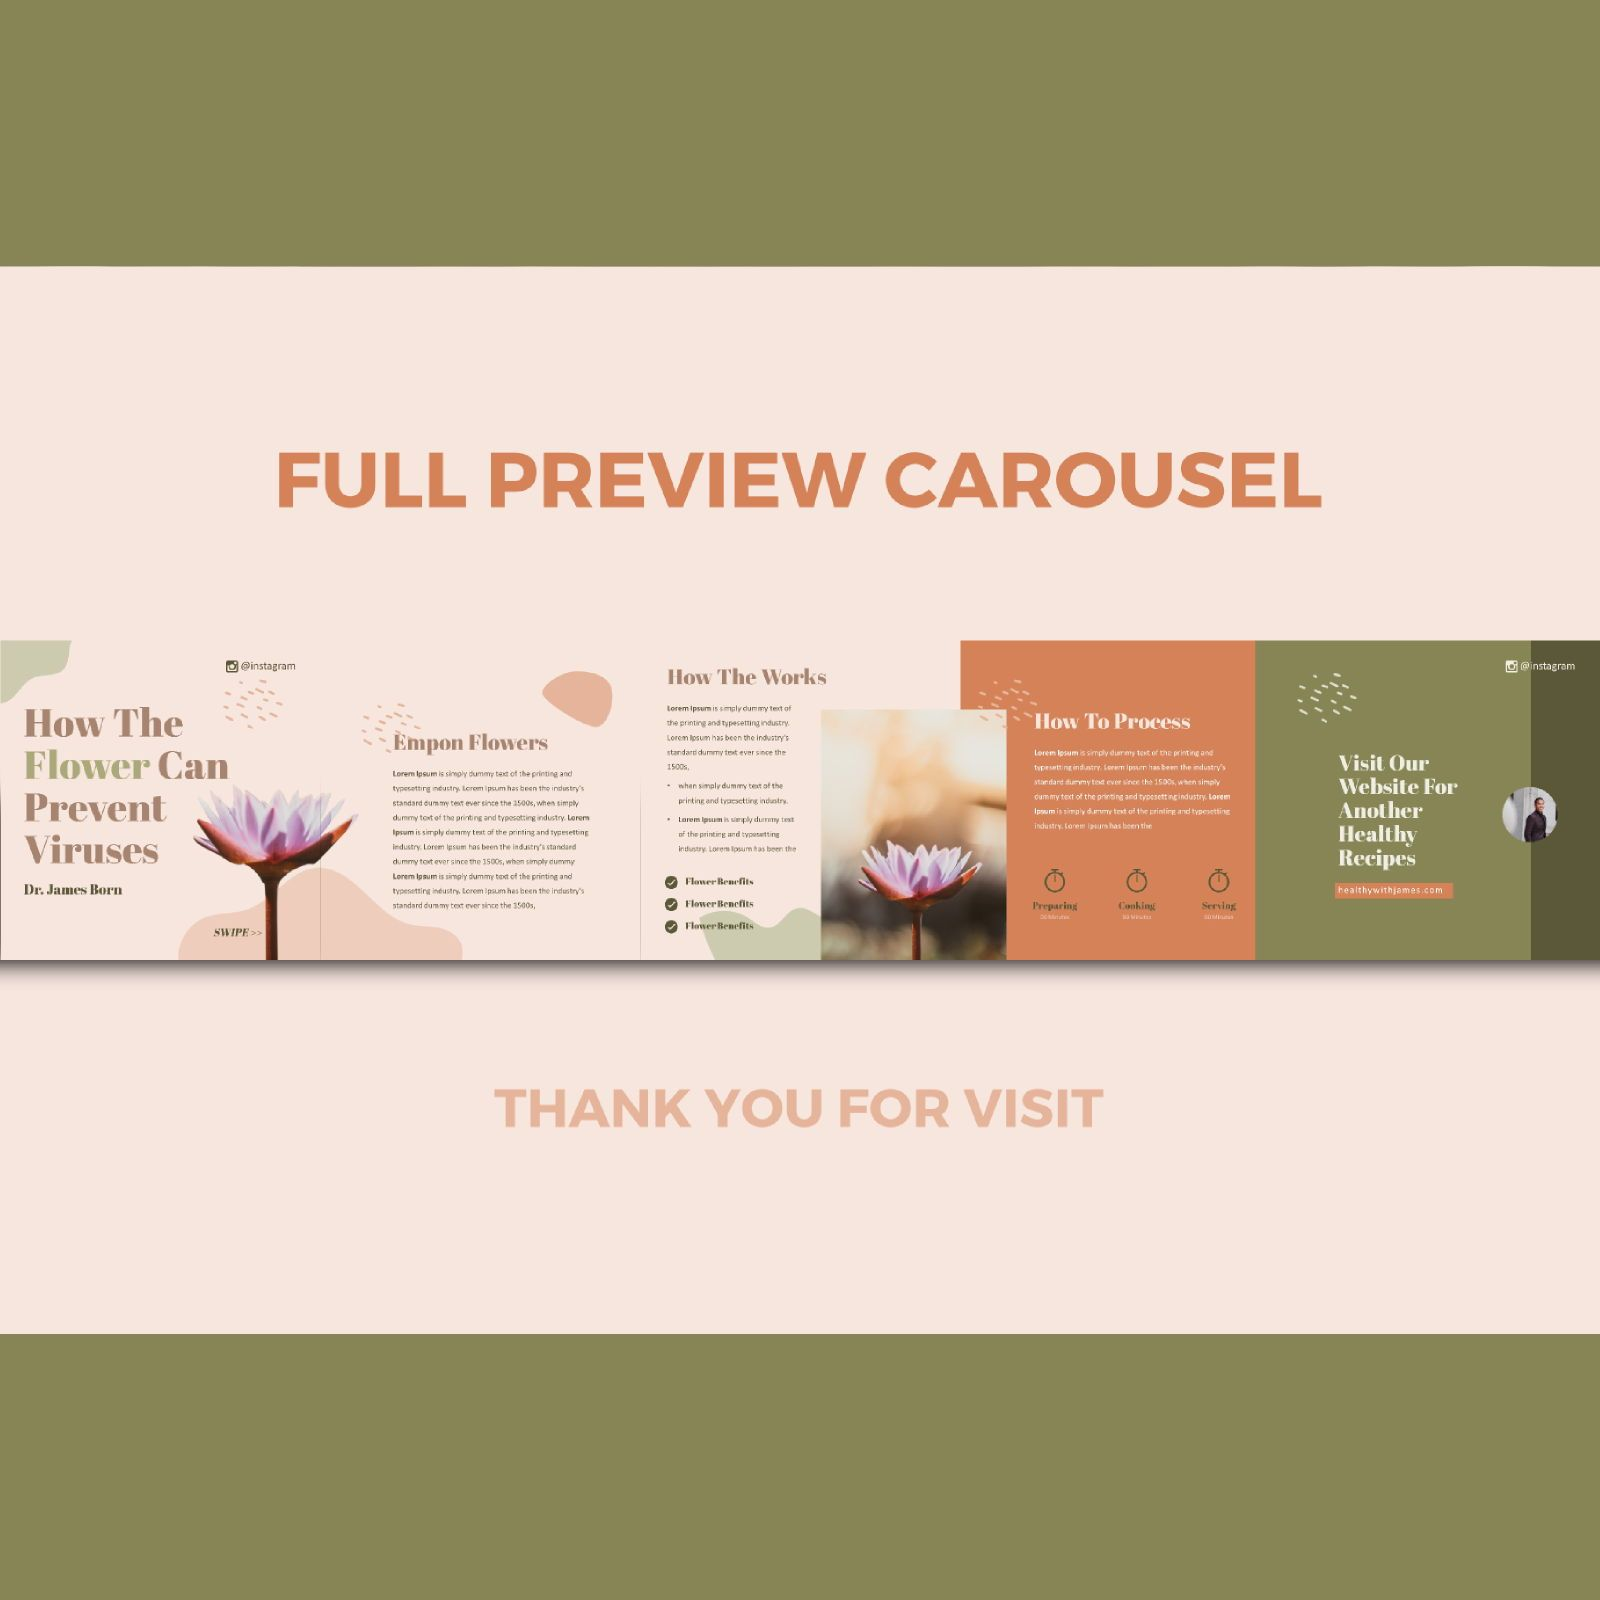 Healthy tips recipes instagram carousel powerpoint template, Slide 3, 07447, Infographics — PoweredTemplate.com